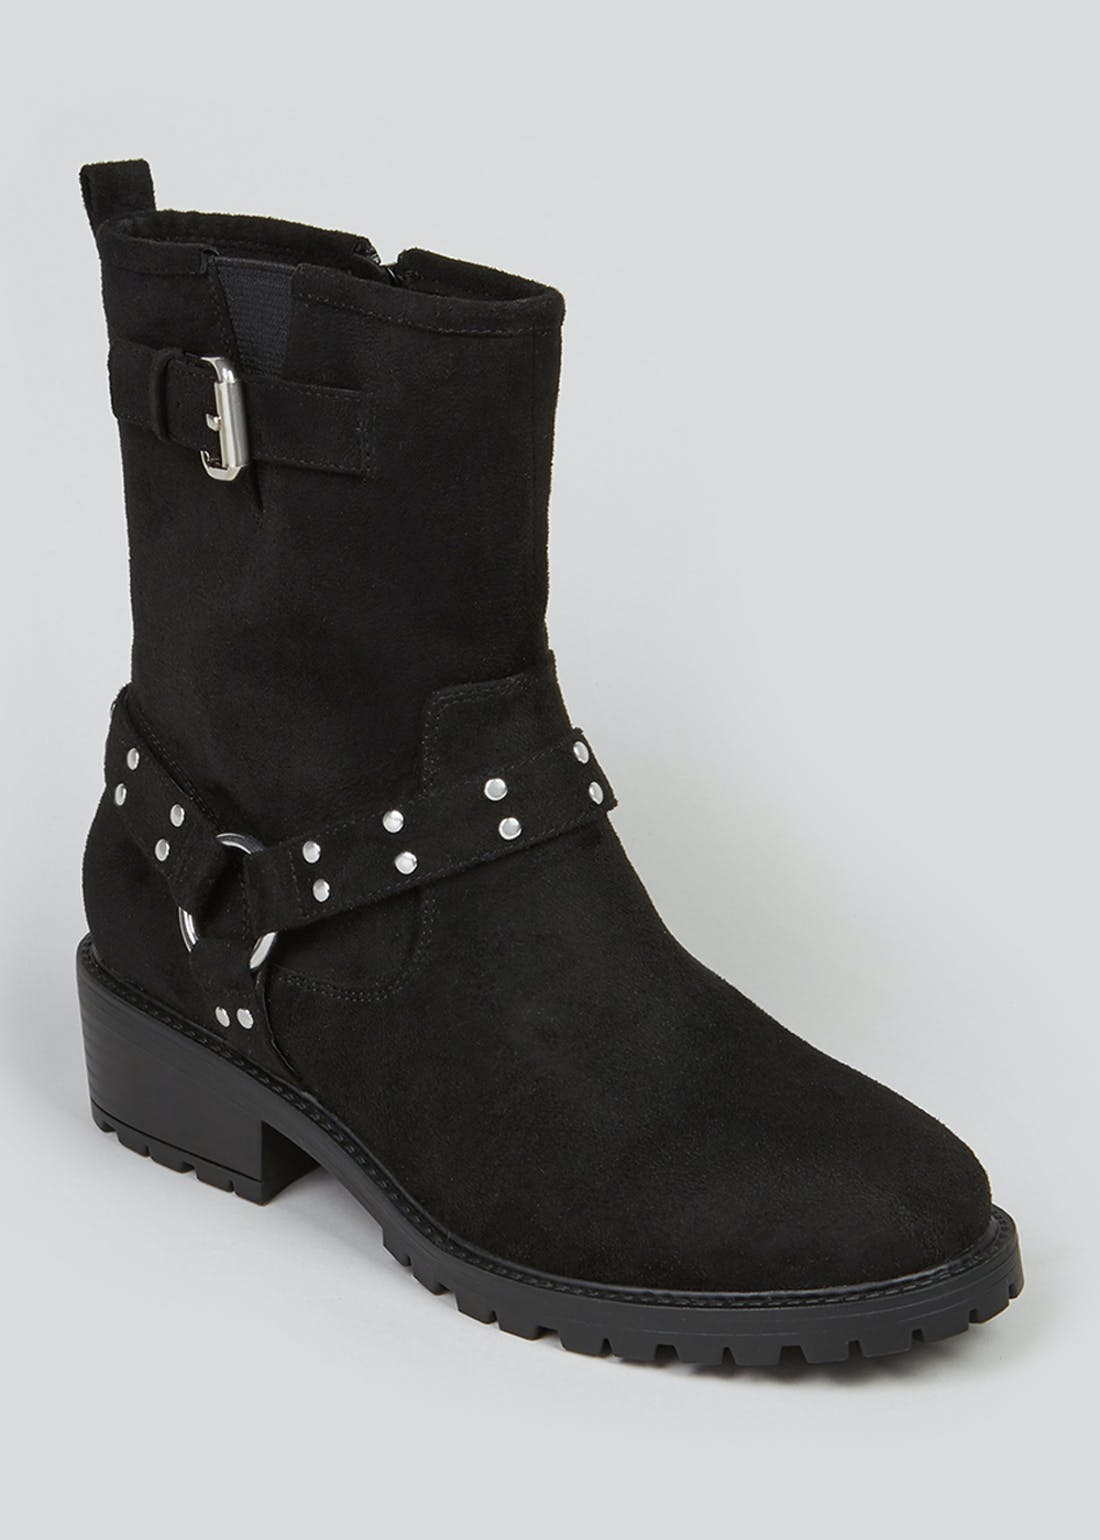 Black Harness Cleated Biker Boots